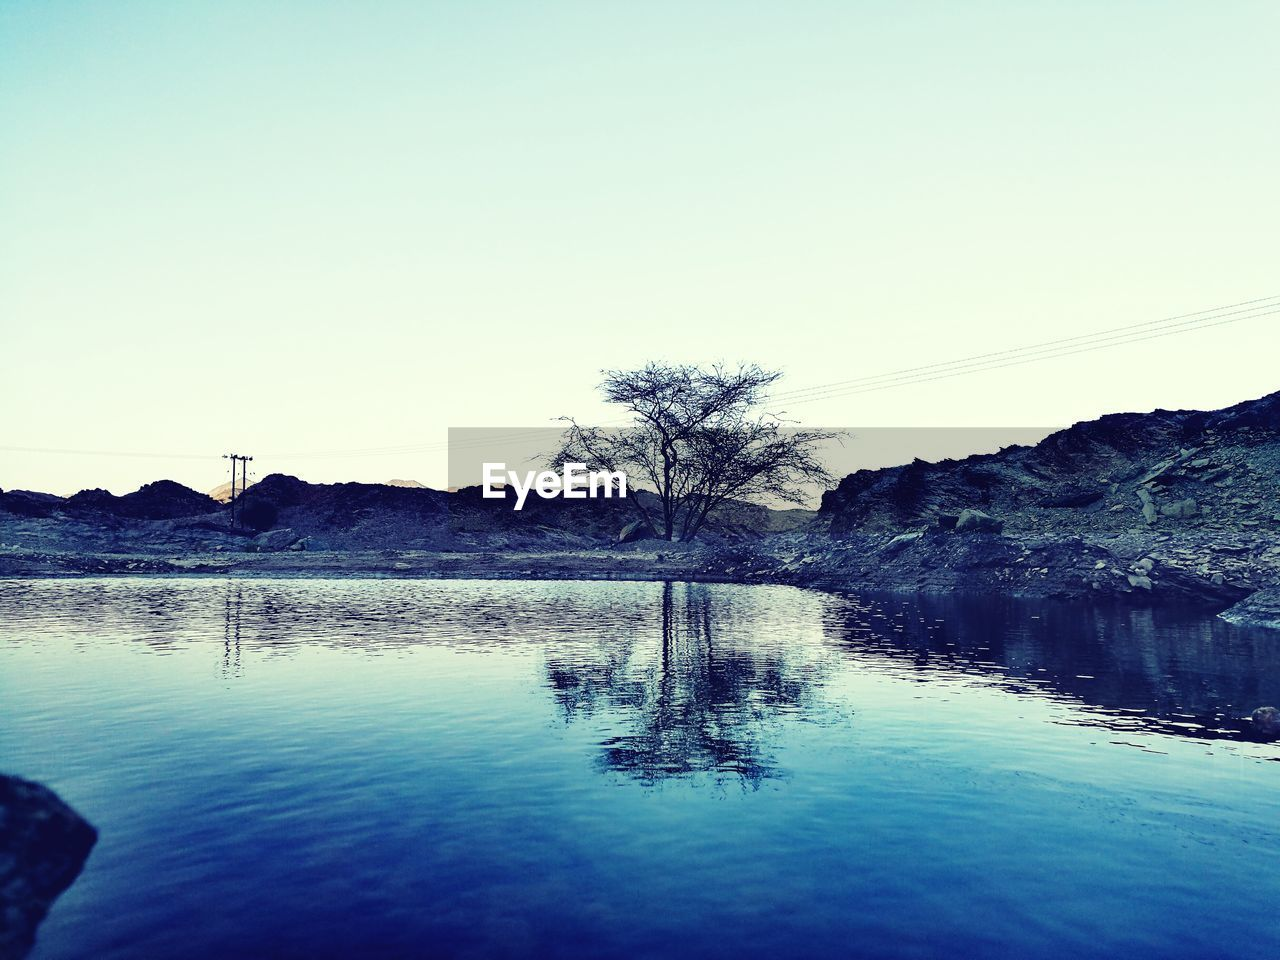 water, sky, clear sky, tranquility, nature, copy space, tranquil scene, reflection, beauty in nature, scenics - nature, no people, waterfront, lake, tree, mountain, blue, day, outdoors, environment